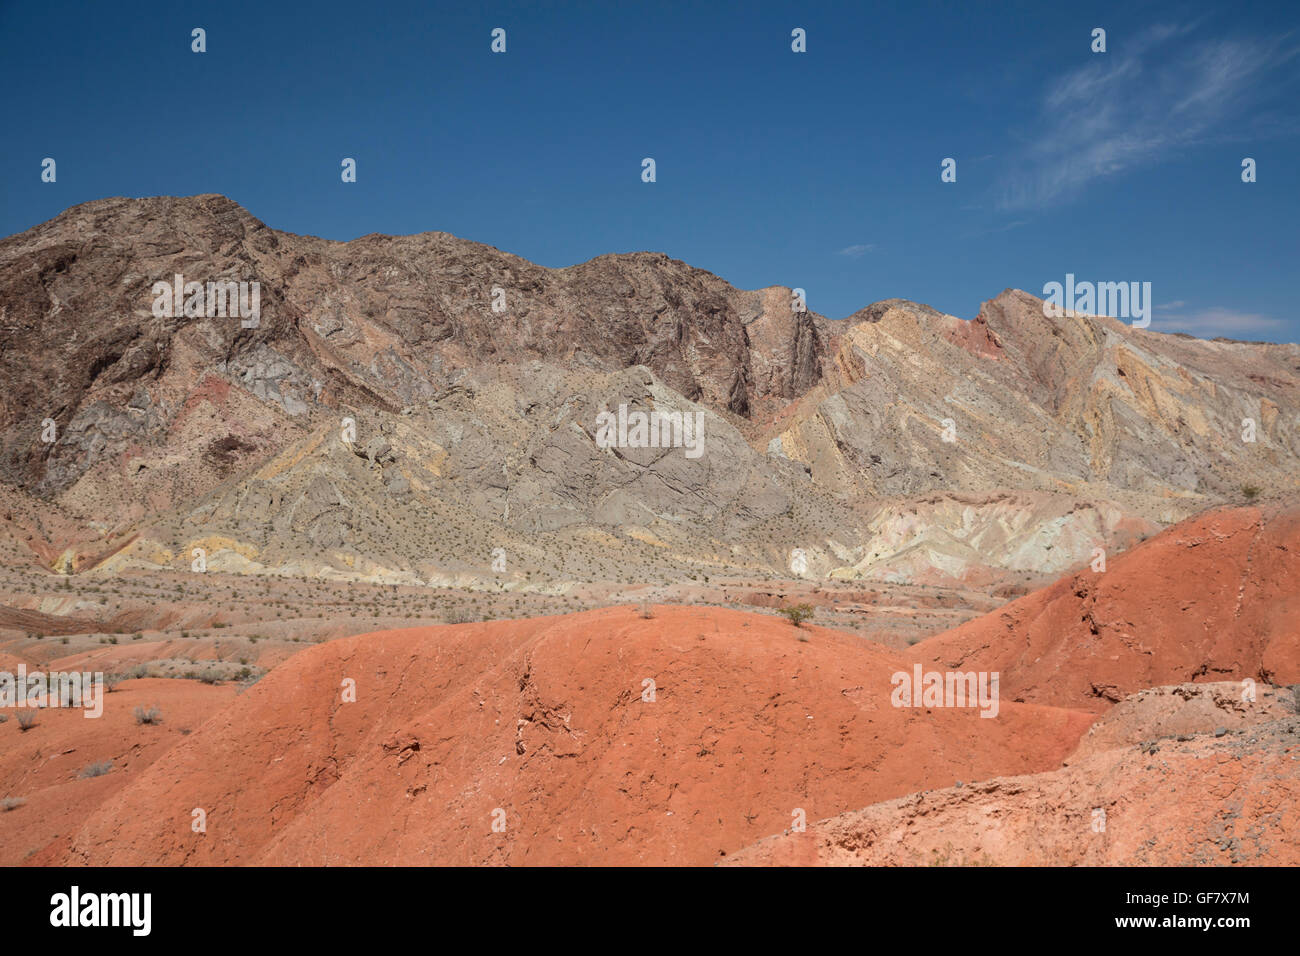 Las Vegas, Nevada - Colorful rocks near the Northshore Road in Lake Mead National Recreation Area. - Stock Image